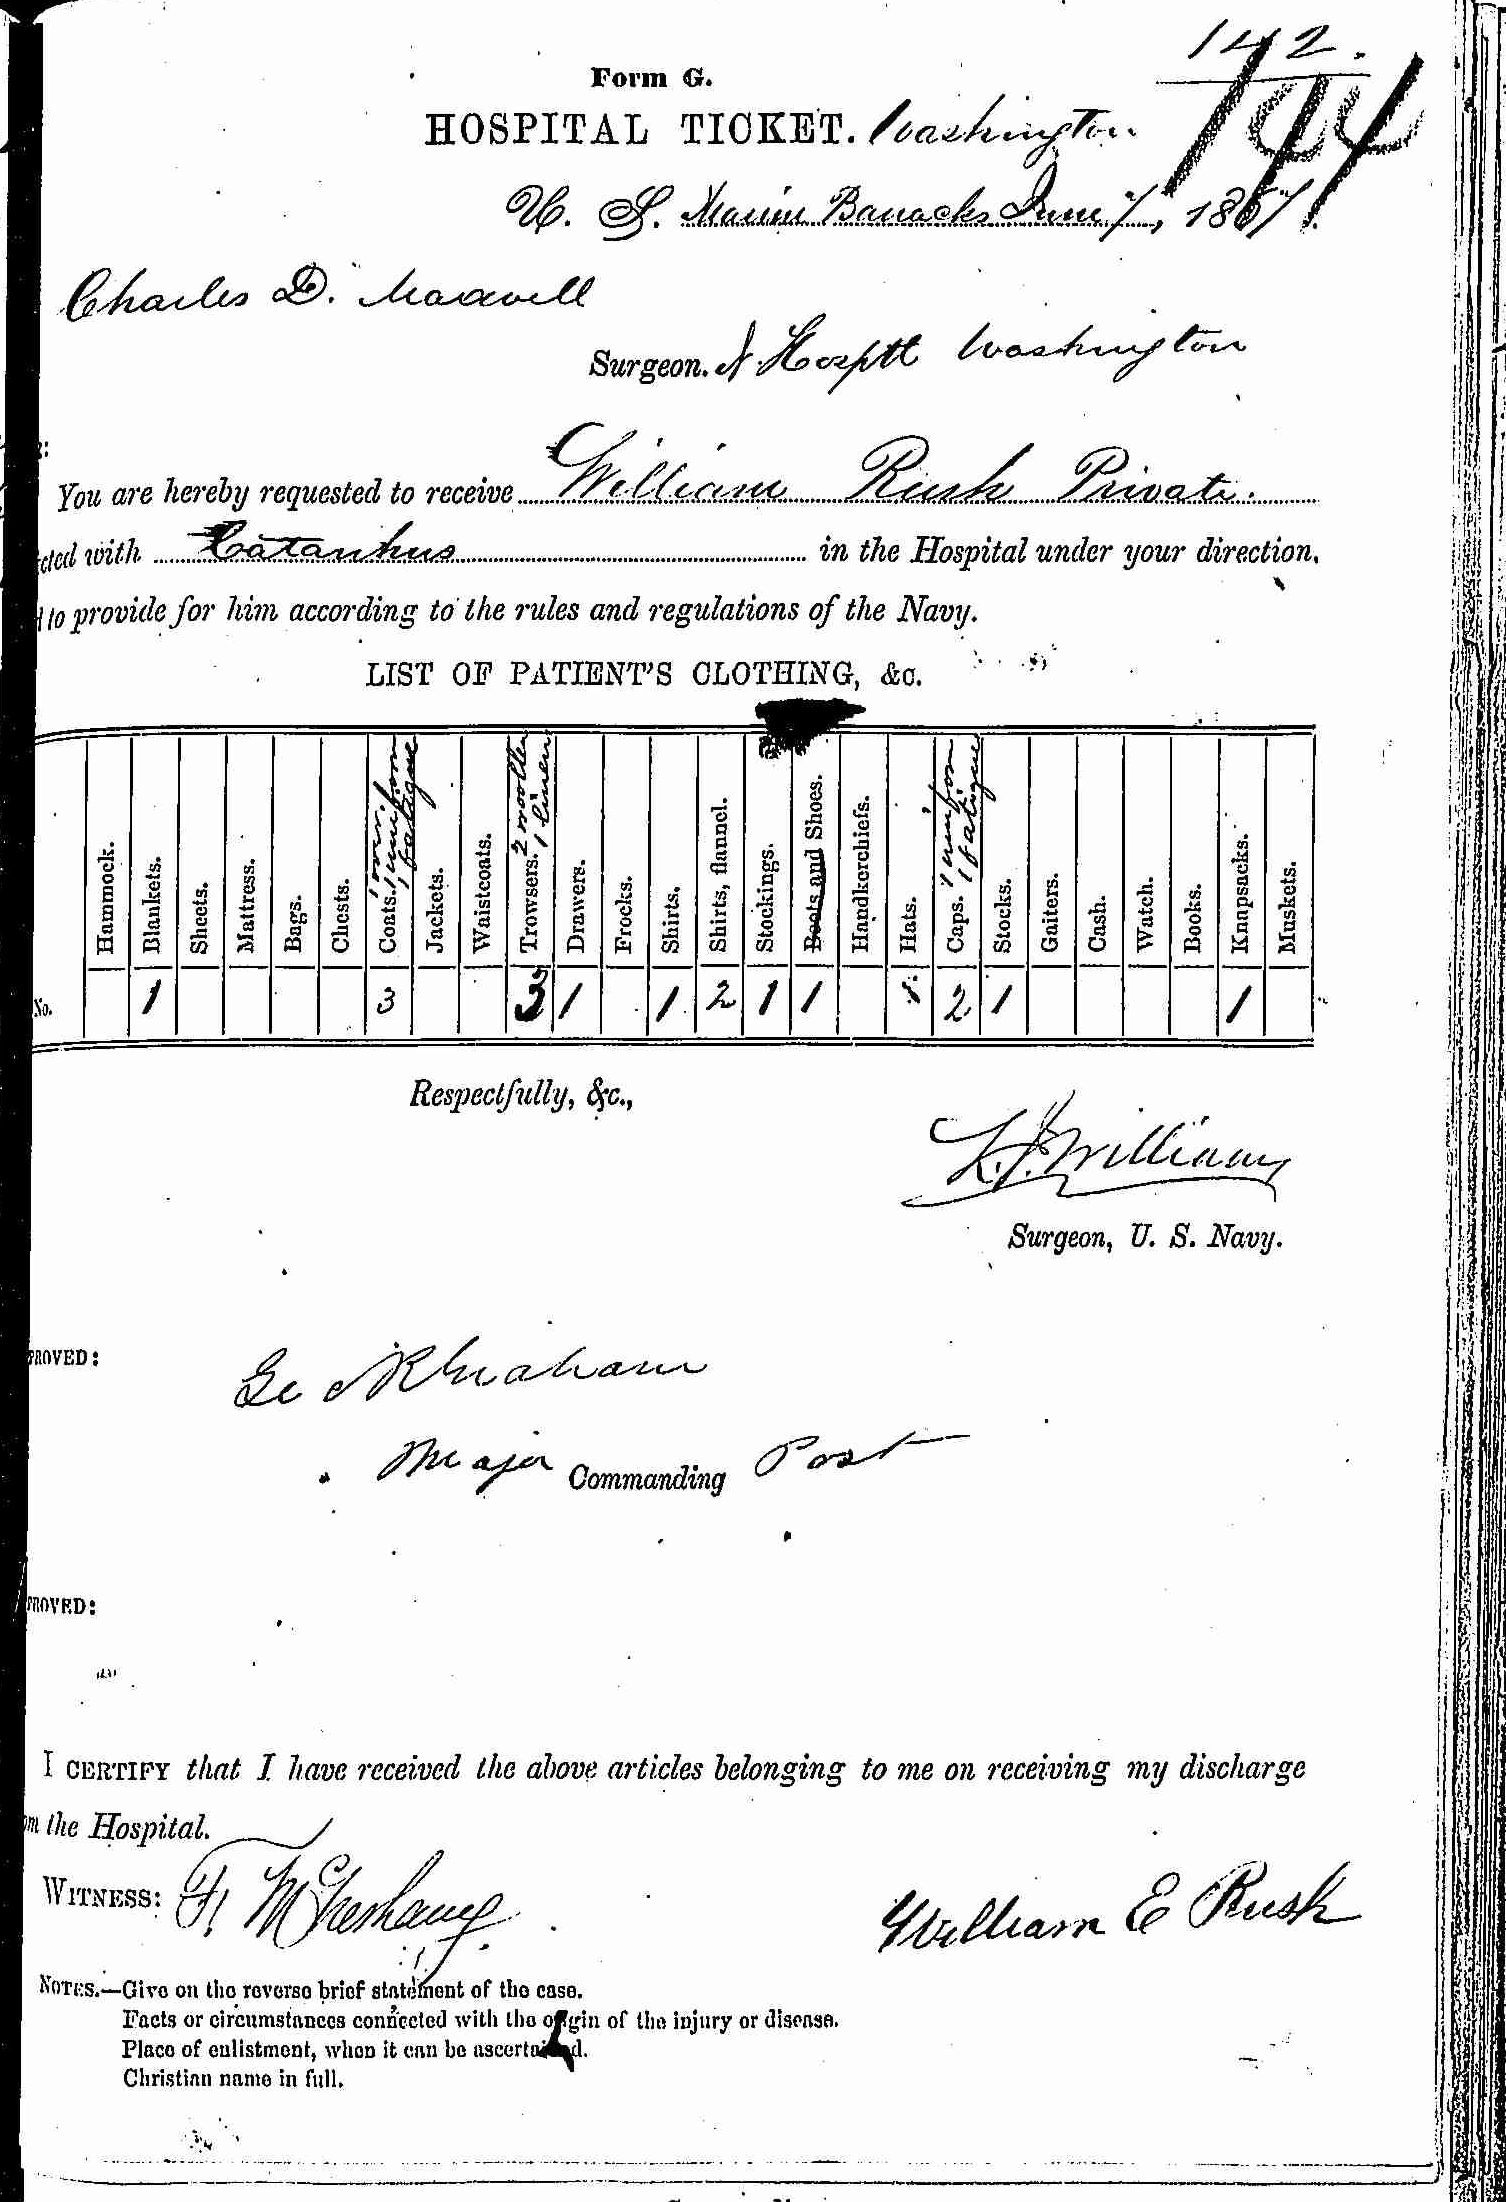 Entry for William Rush (page 1 of 2) in the log Hospital Tickets and Case Papers - Naval Hospital - Washington, D.C. - 1866-68